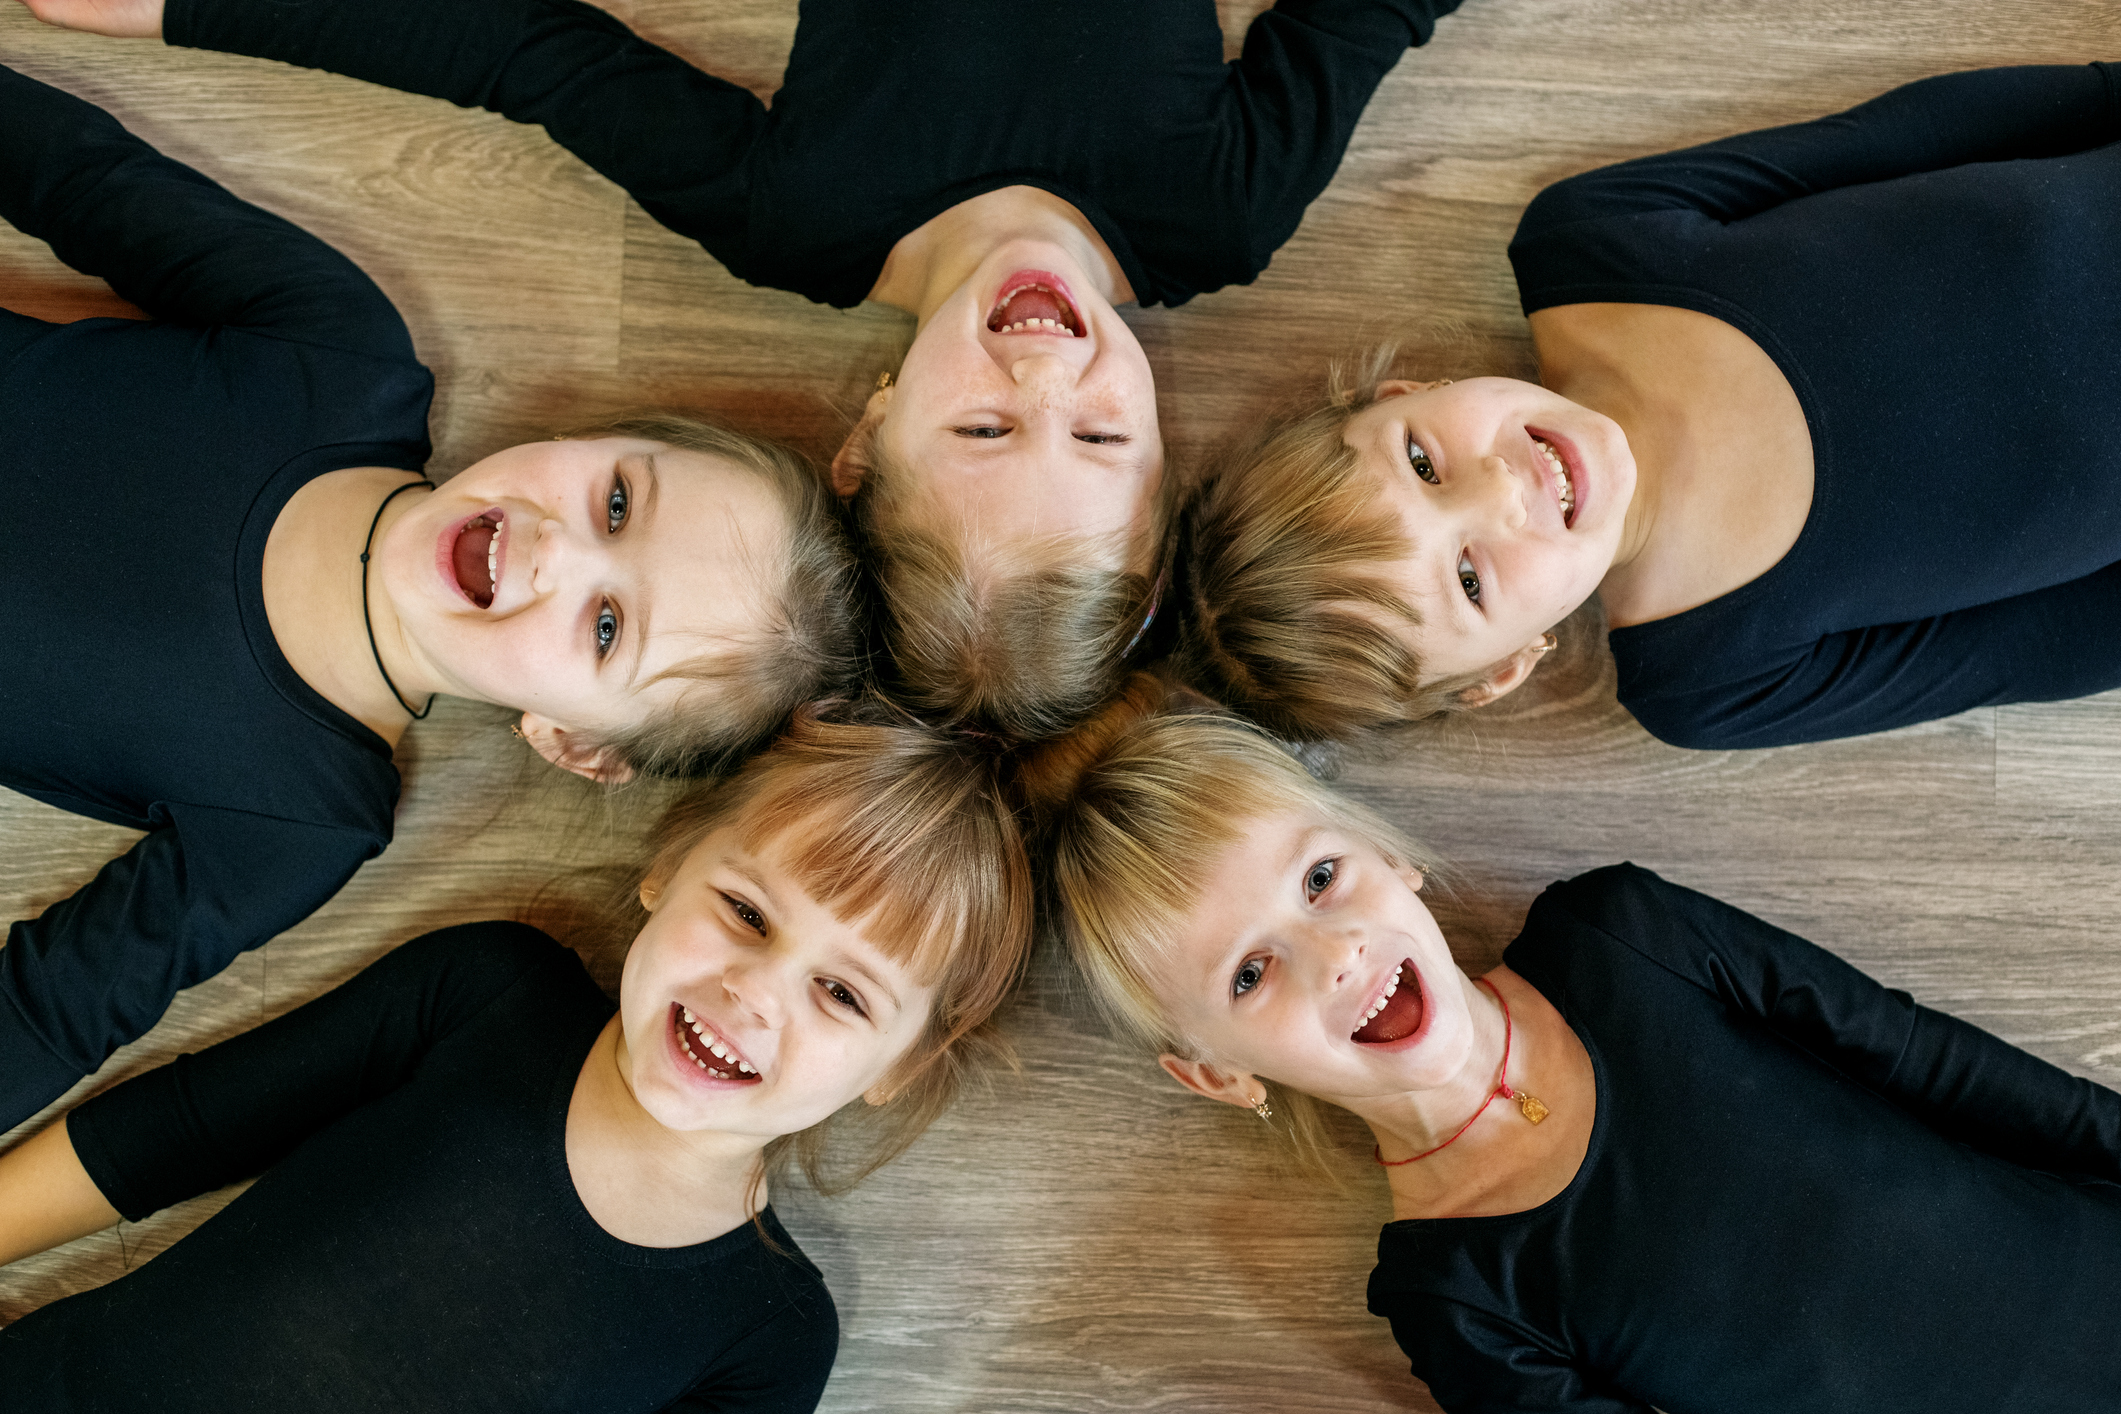 A team of young children do gymnastics in a dance class. The concept of sport, education, childhood, hobbies and dance.